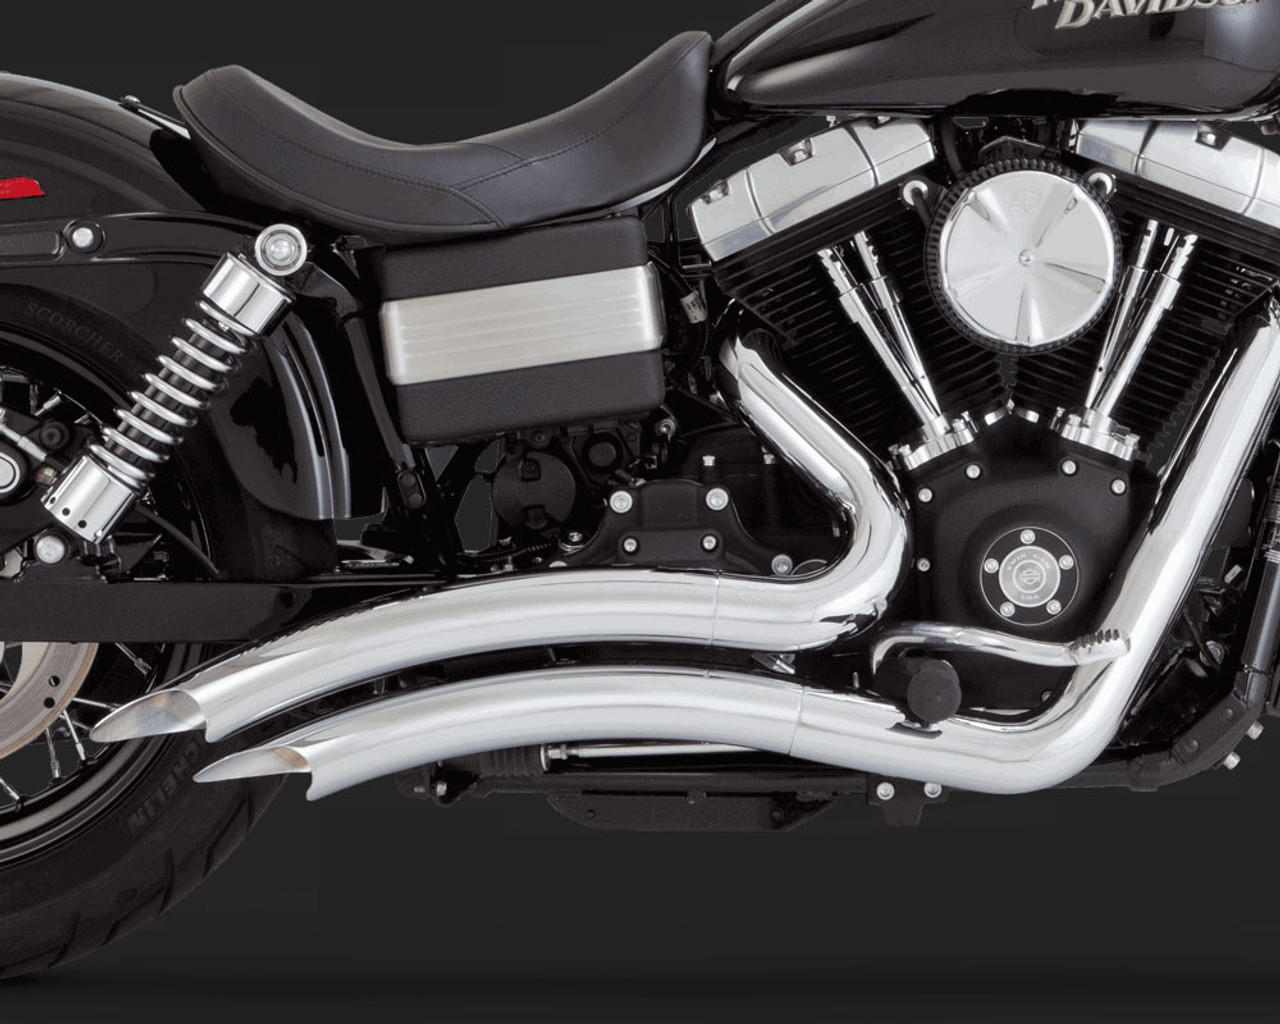 vance hines big radius 2 into 2 exhaust system for harley davidson dyna models 06 17 chrome